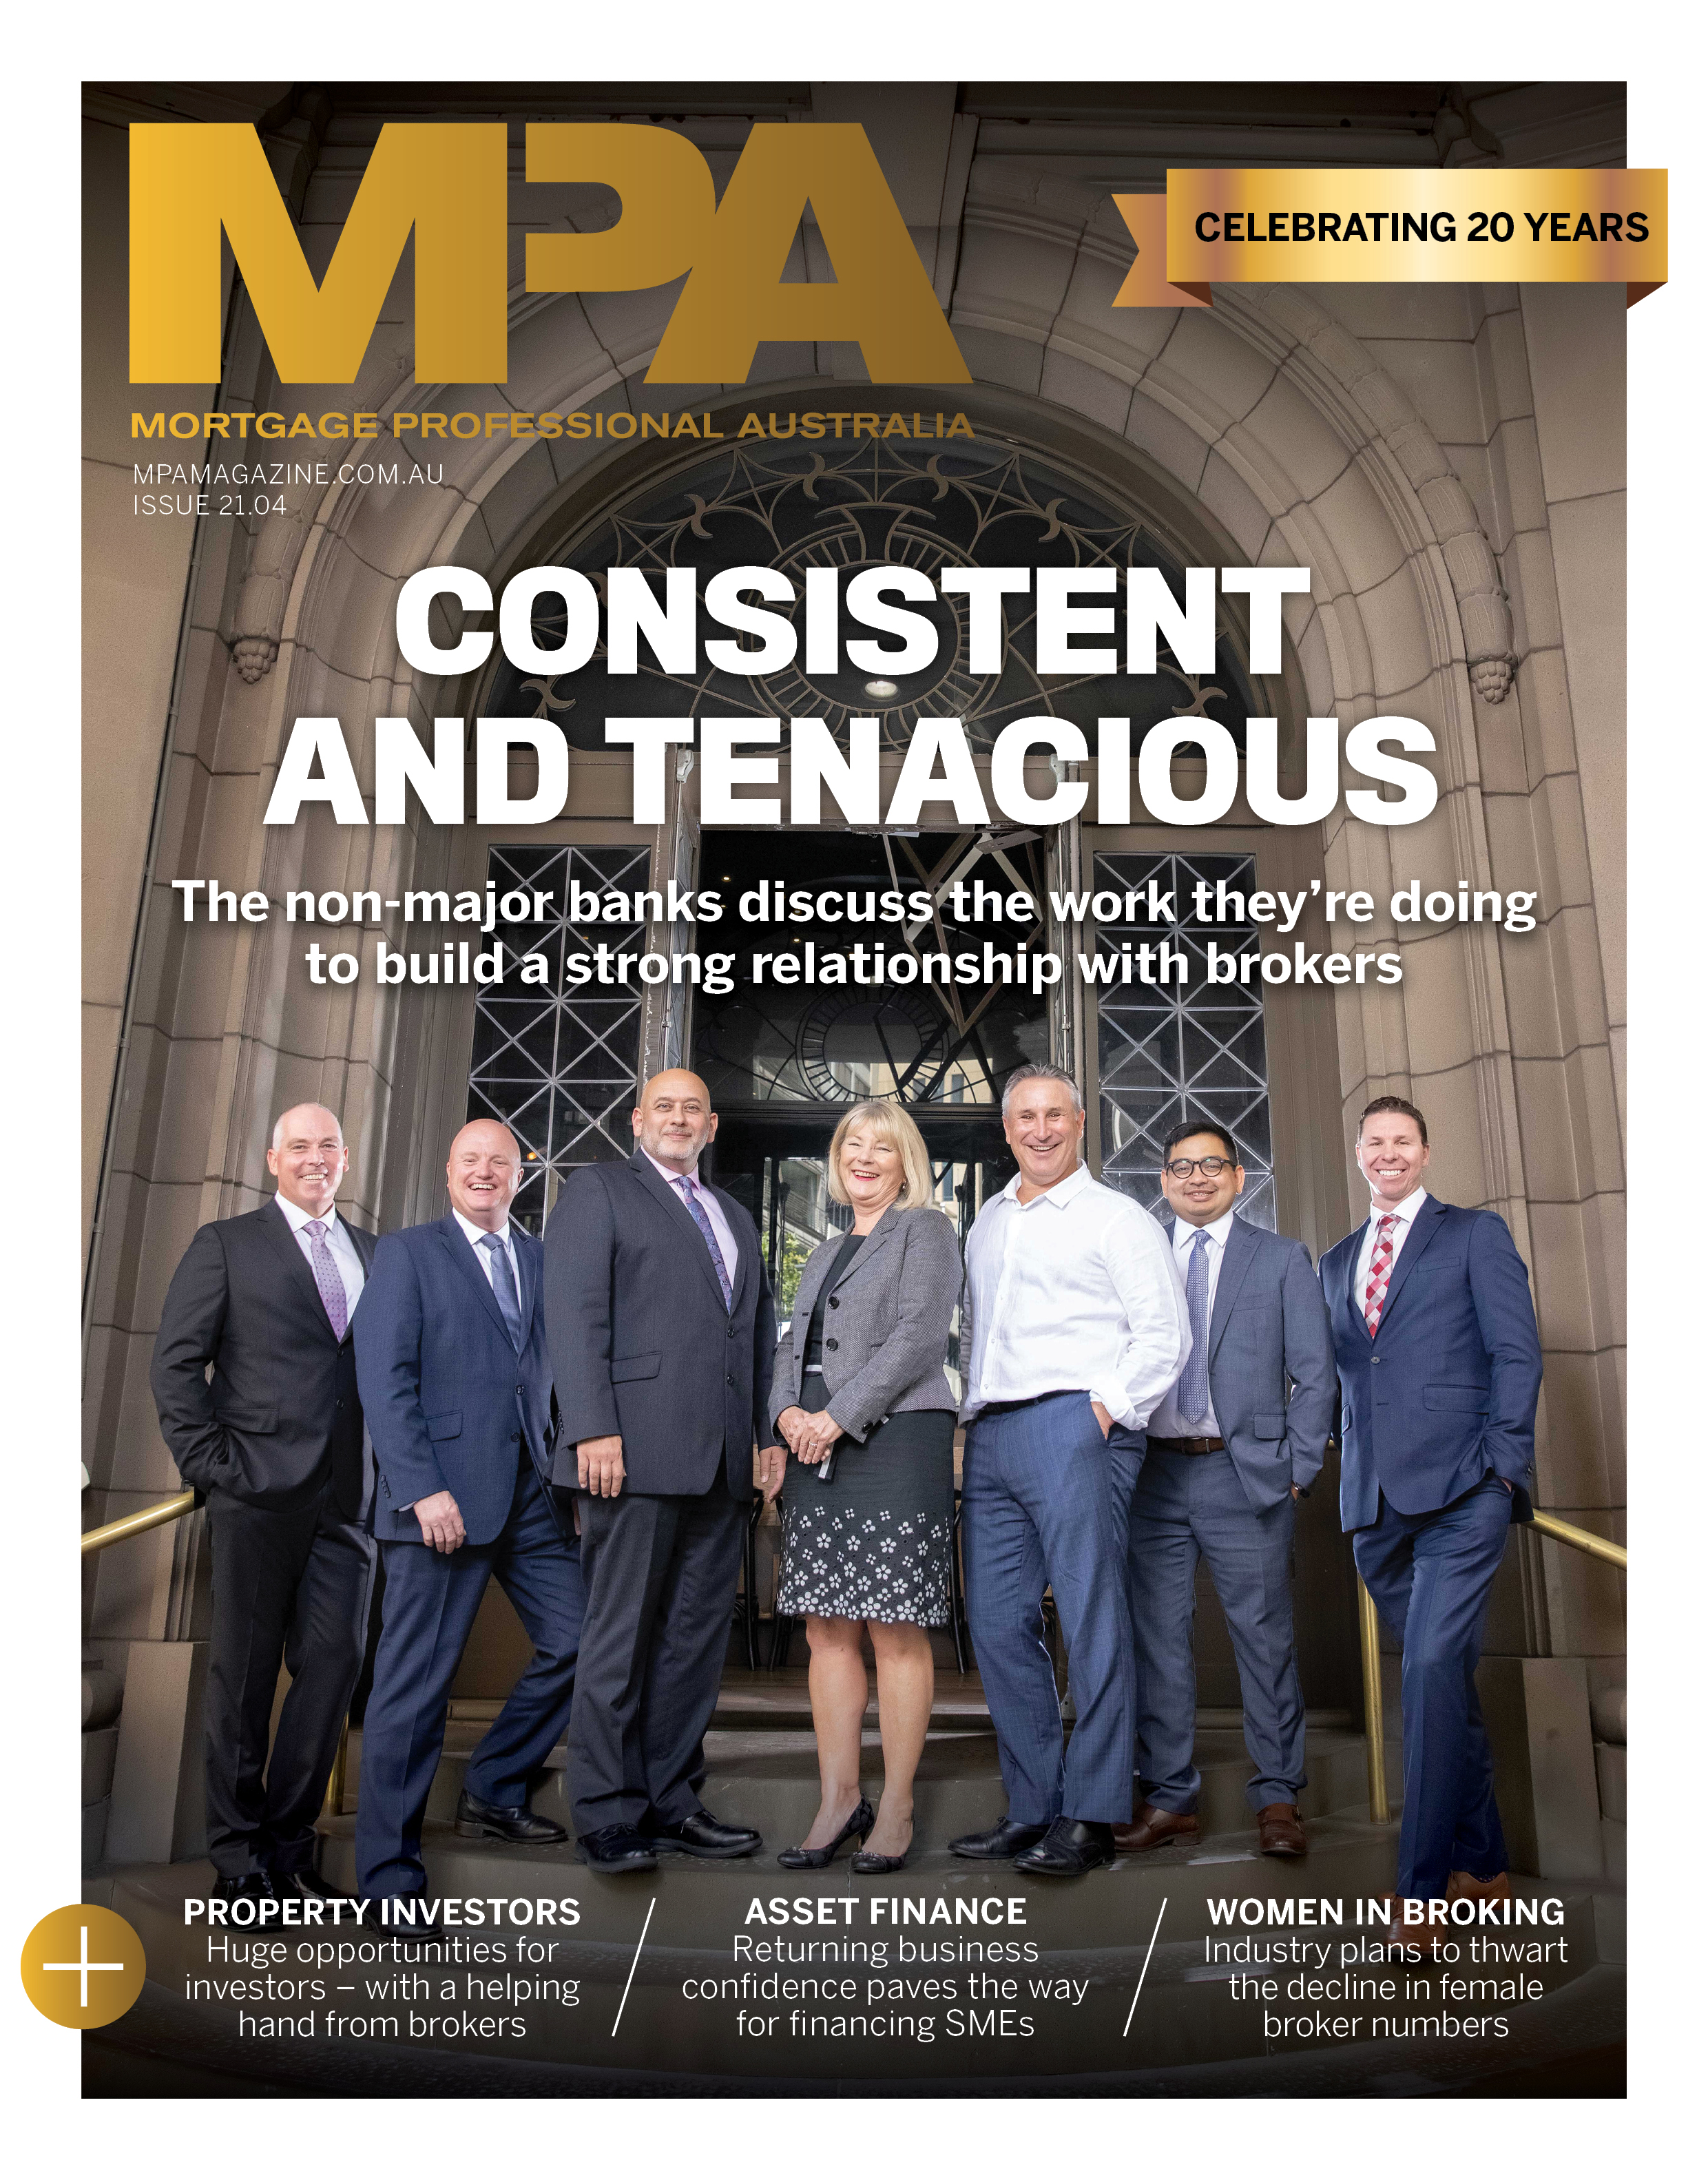 MPA issue 21.04